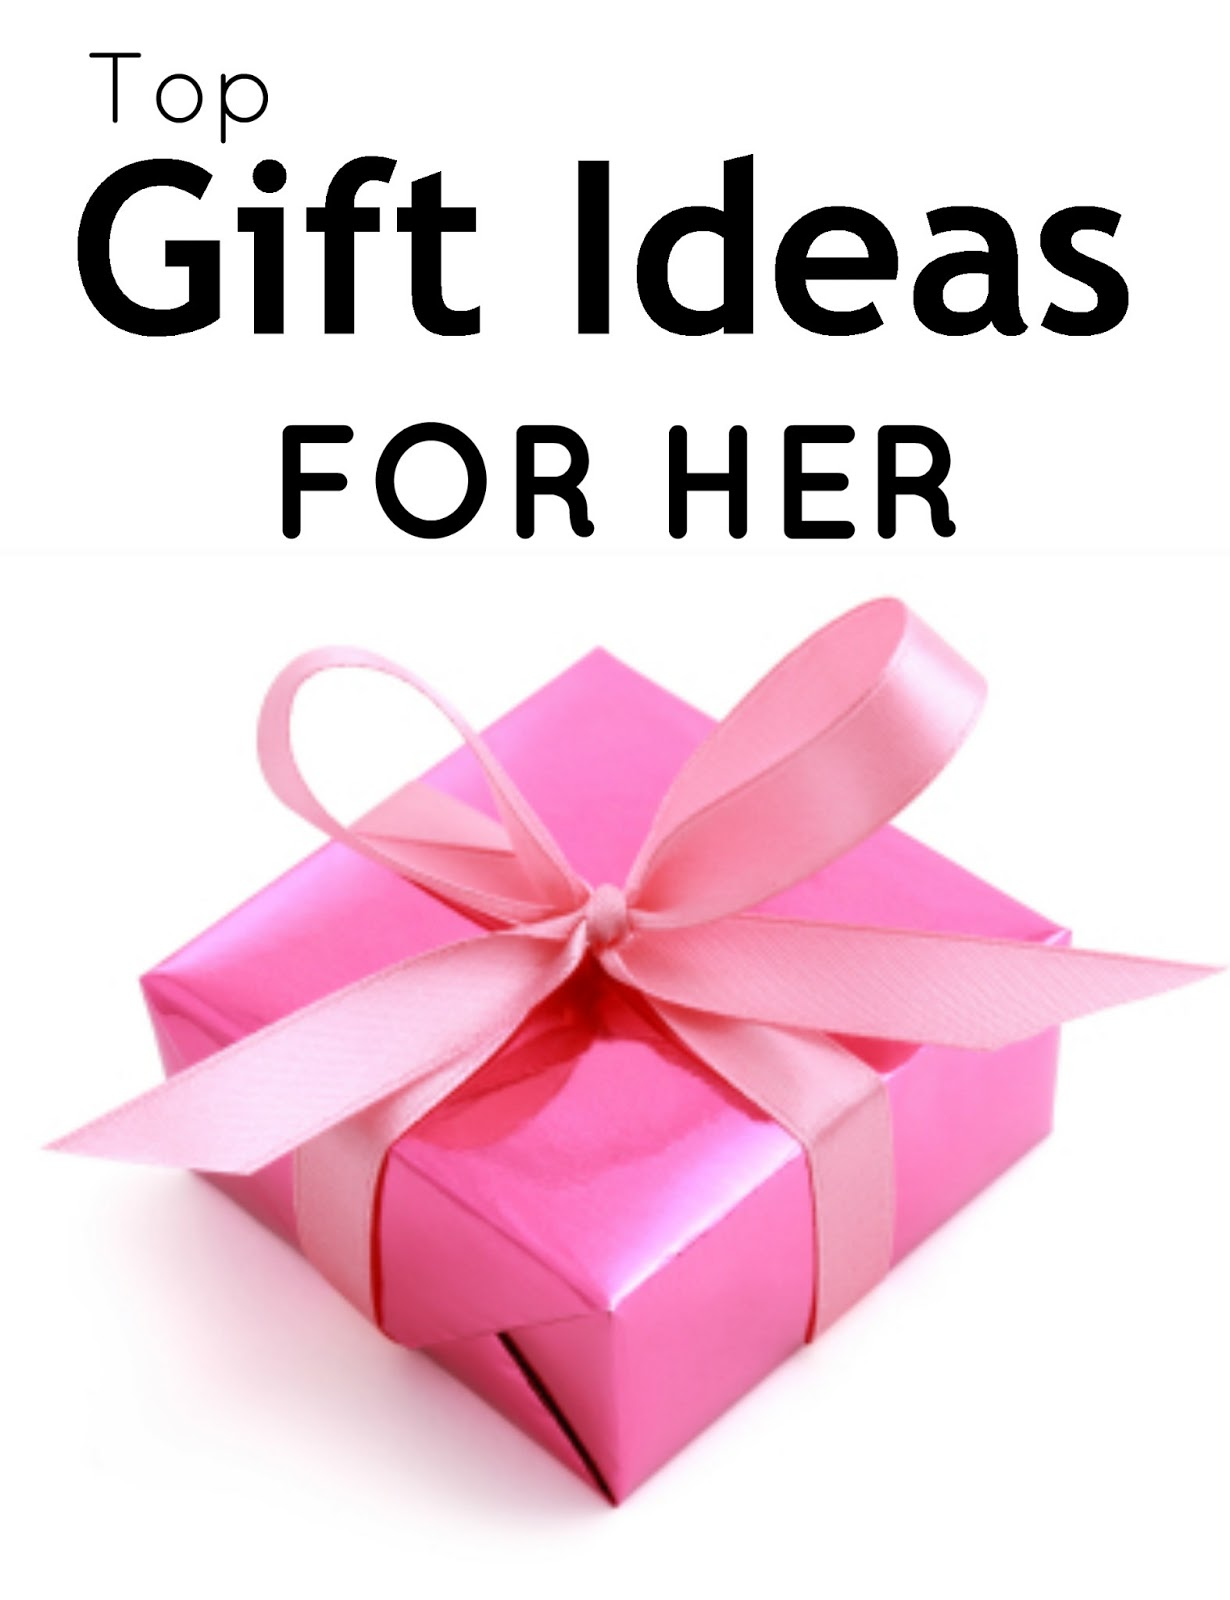 Mommy Mia Monologues Top Gift Ideas For Her 2013